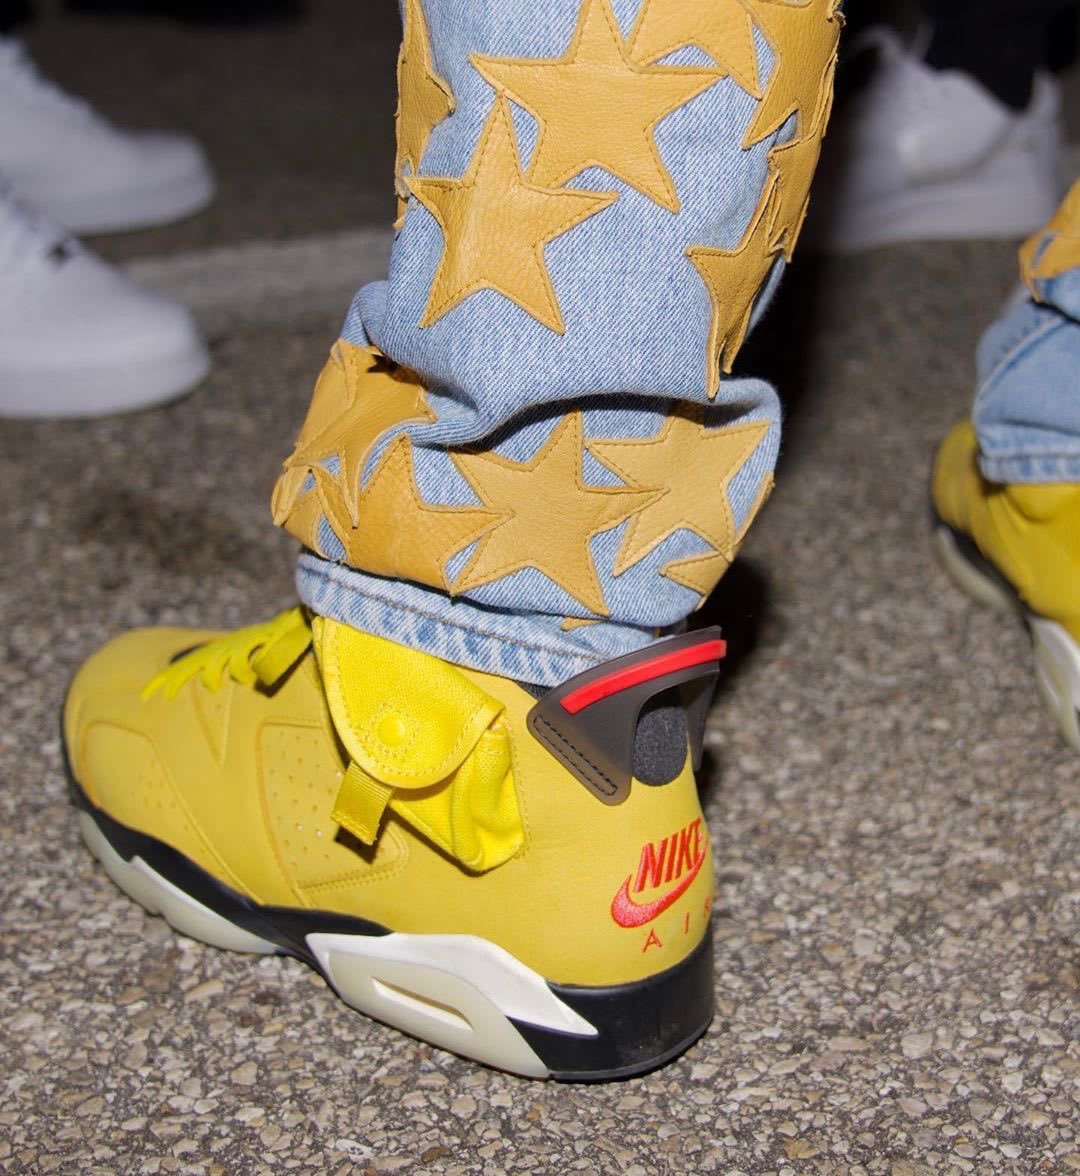 Travis Scott x Air Jordan 6 Mustard Offset Side